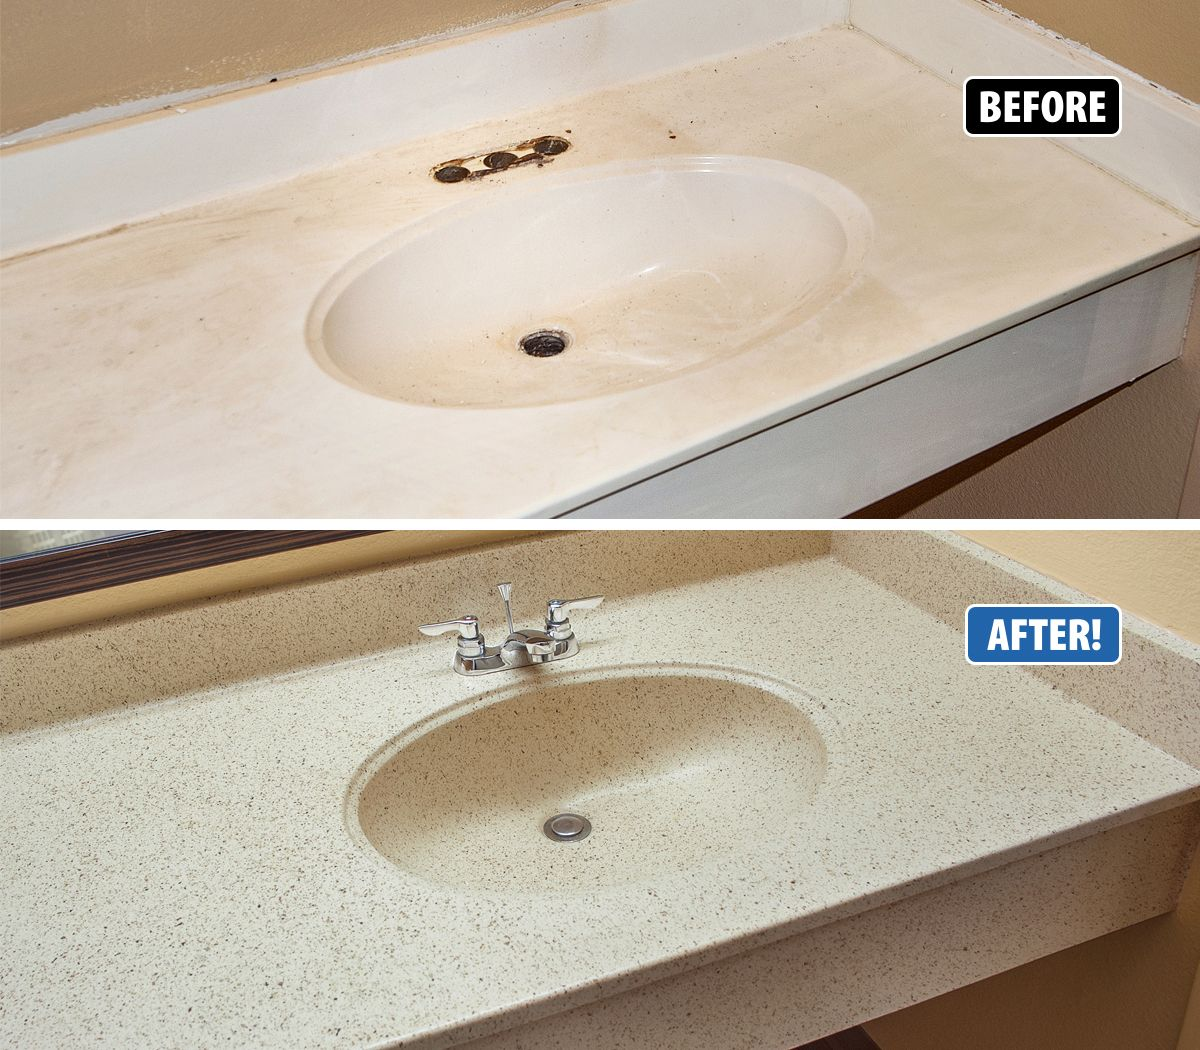 This Cultured Marble Sink And Vanity Are All In One Piece And Replacement Would Have Posed A R Cultured Marble Countertops Cultured Marble Refinish Countertops